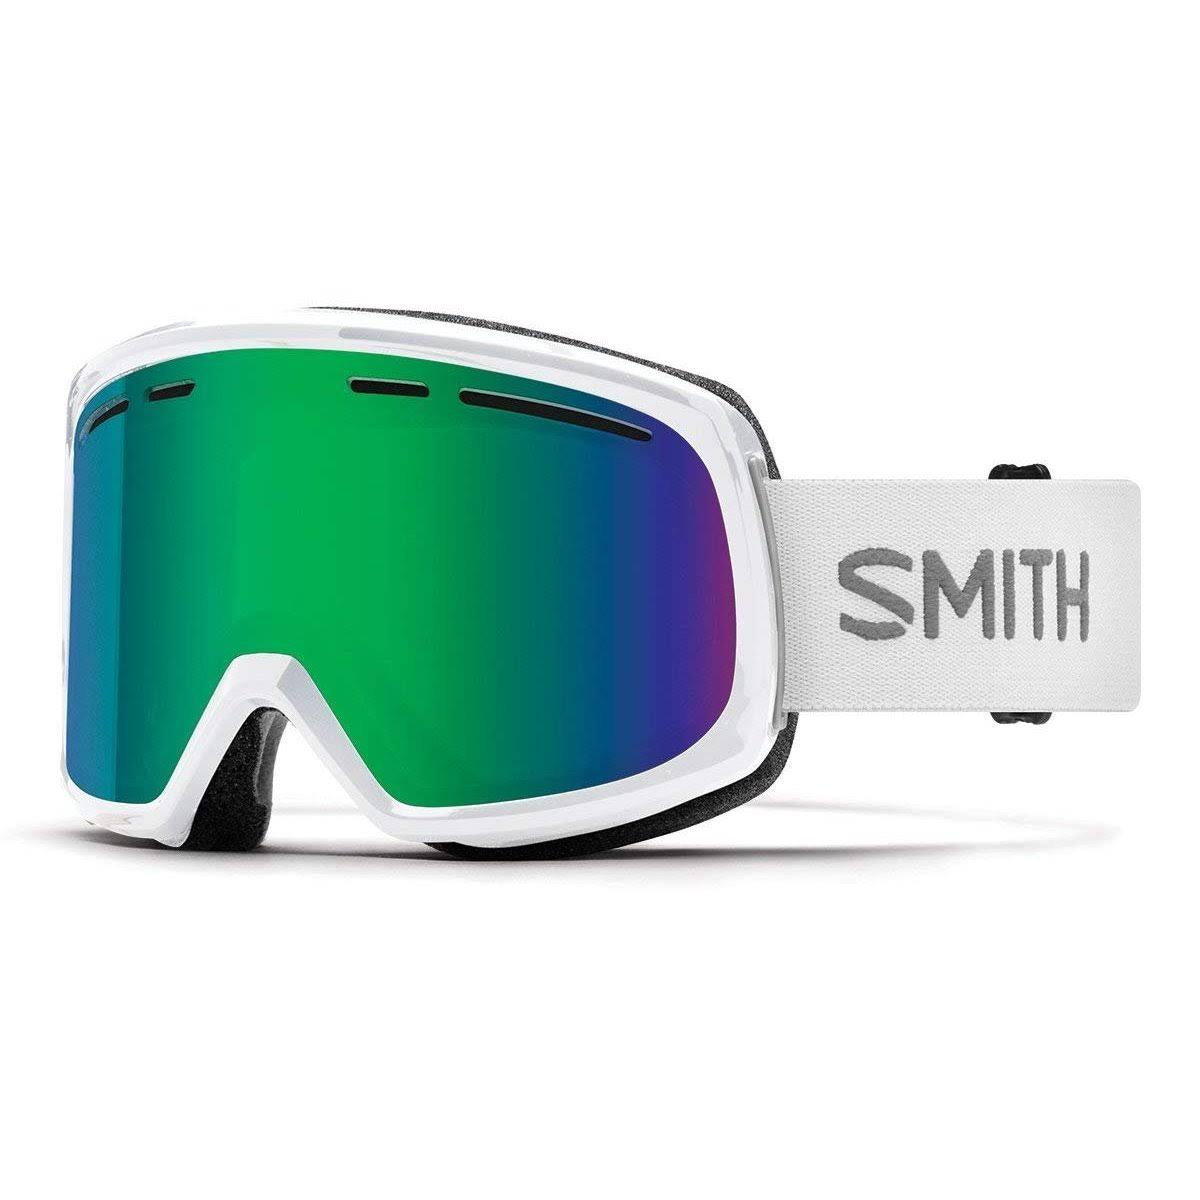 Smith - Range Goggles - White - Green Sol-X Mirror